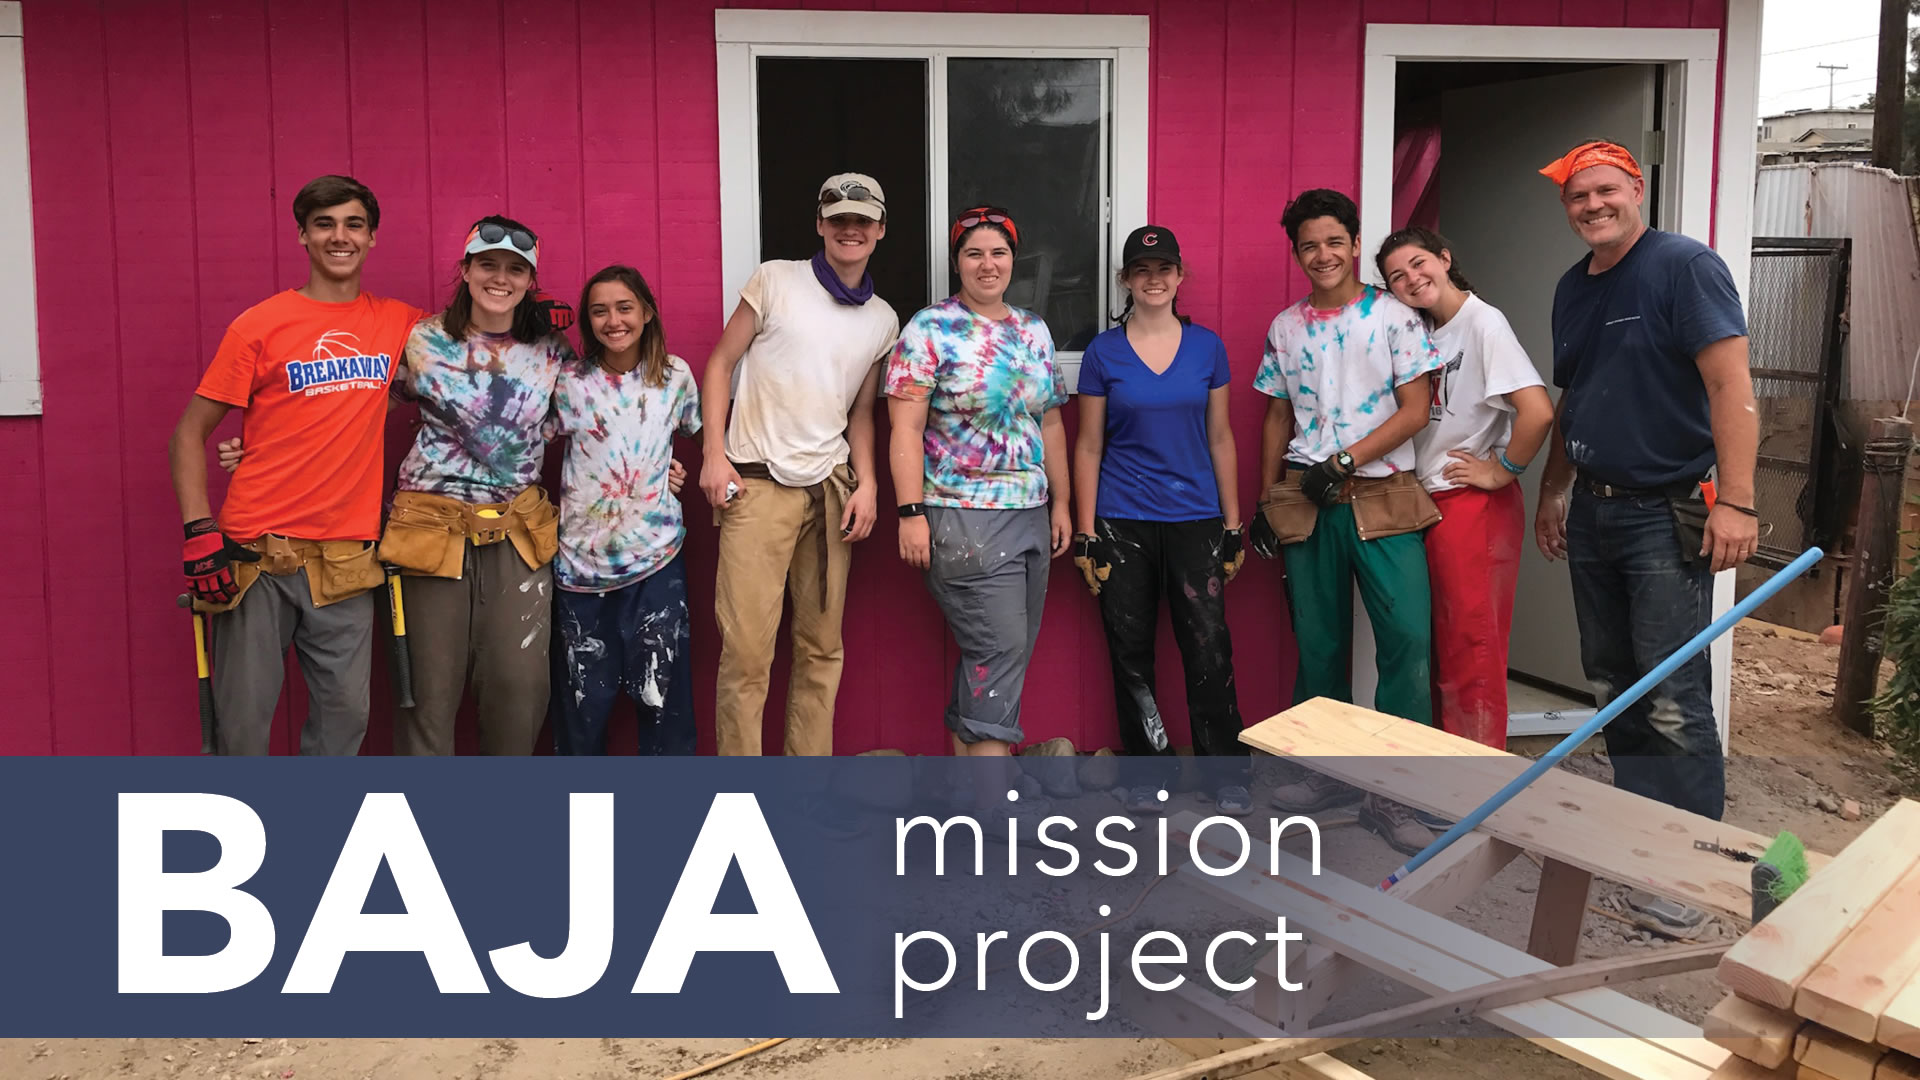 Baja Mission Project | July 27 - August 3